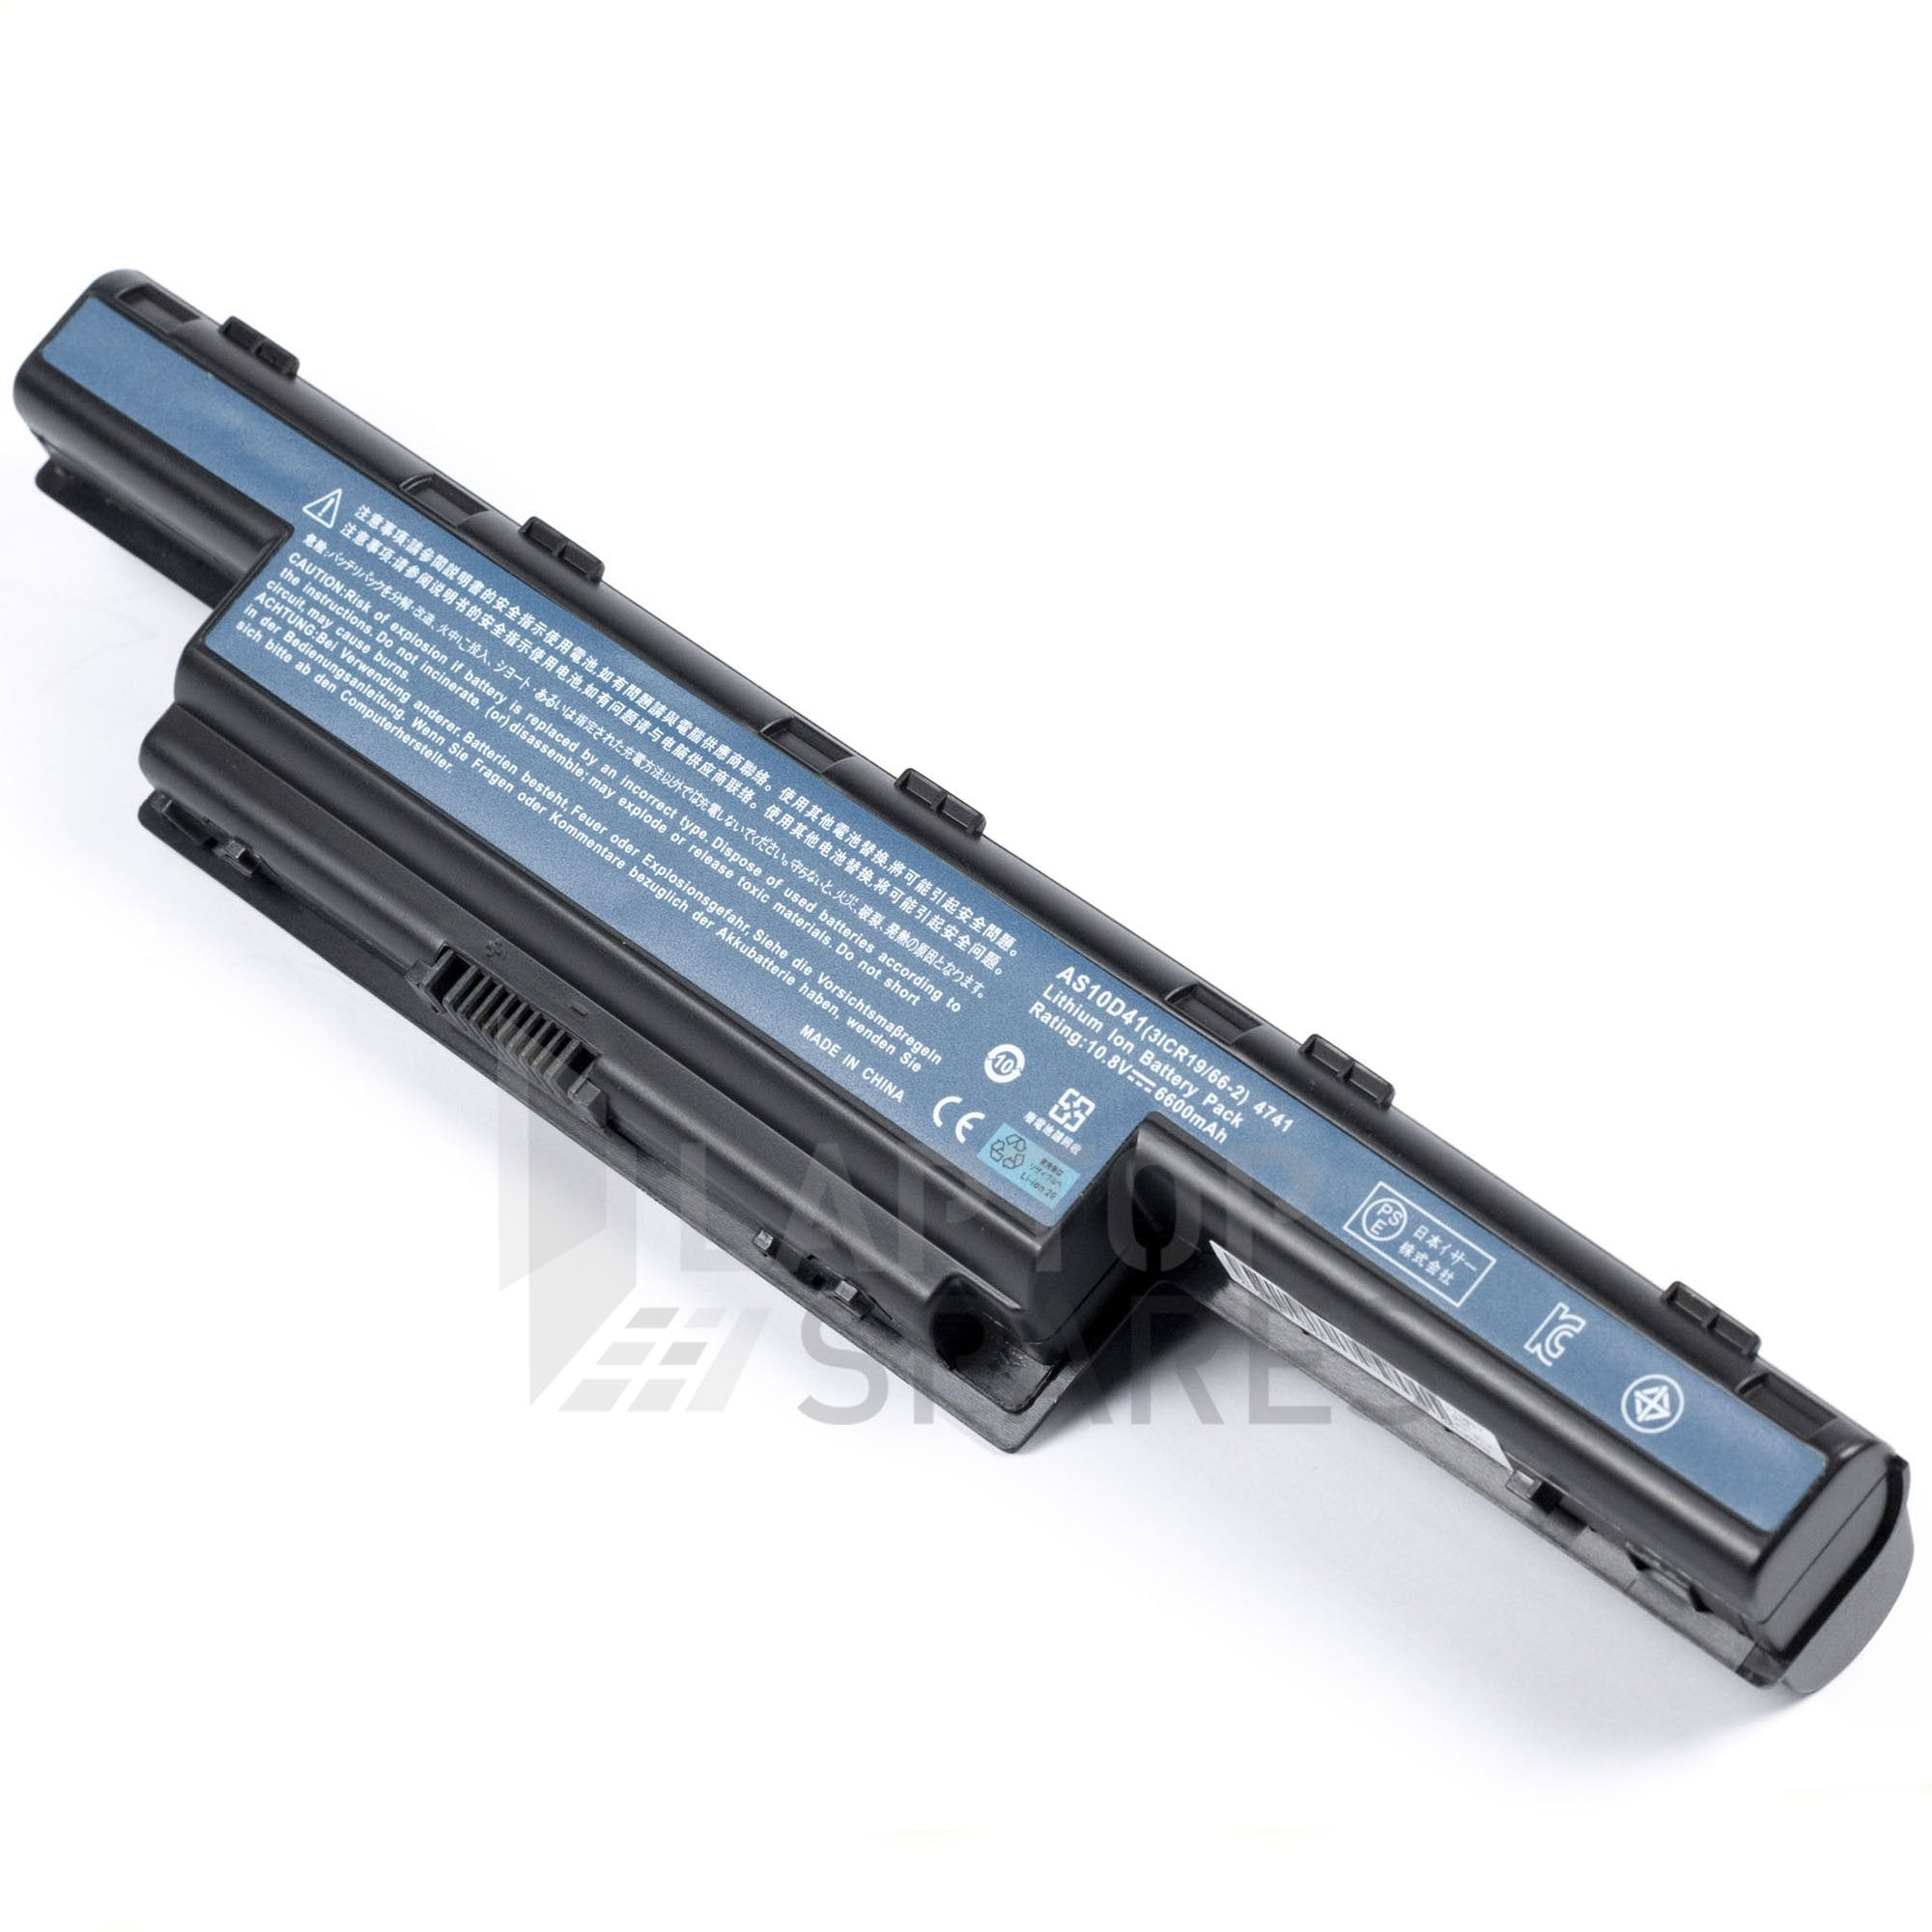 Acer TravelMate TM7750G TM7750Z 6600mAh 9 Cell Battery